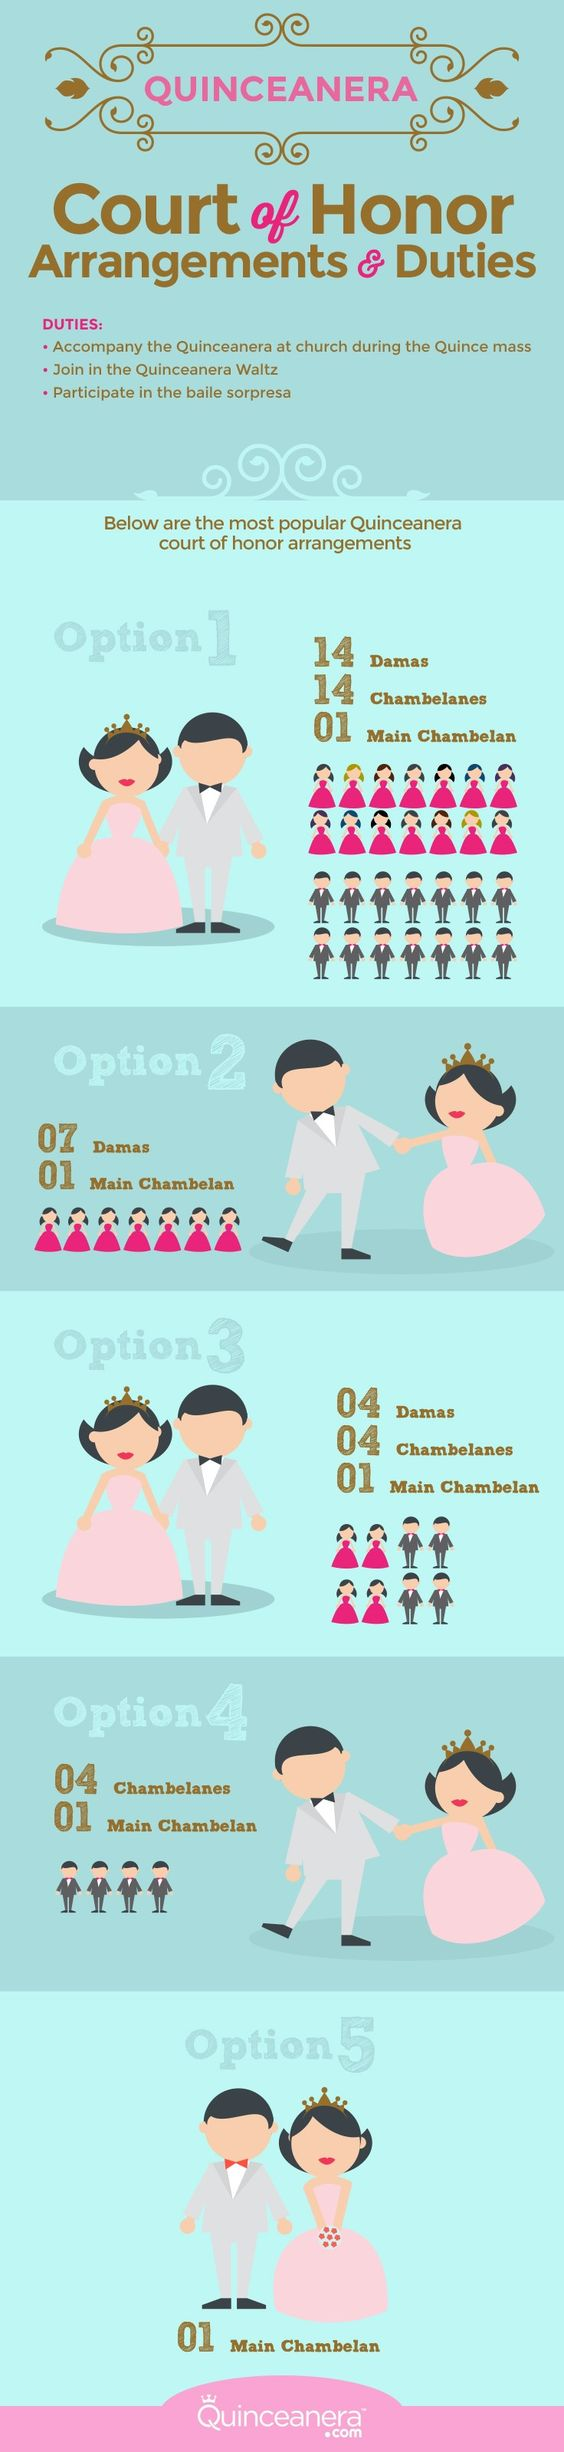 There is no set number as to how many damas and chambelanes, it is up to the Quinceanera to decide how many members to choose for her court. - See more at: http://www.quinceanera.com/traditions/whats-a-quinceanera-court-of-honor/#sthash.swCzekqV.dpuf